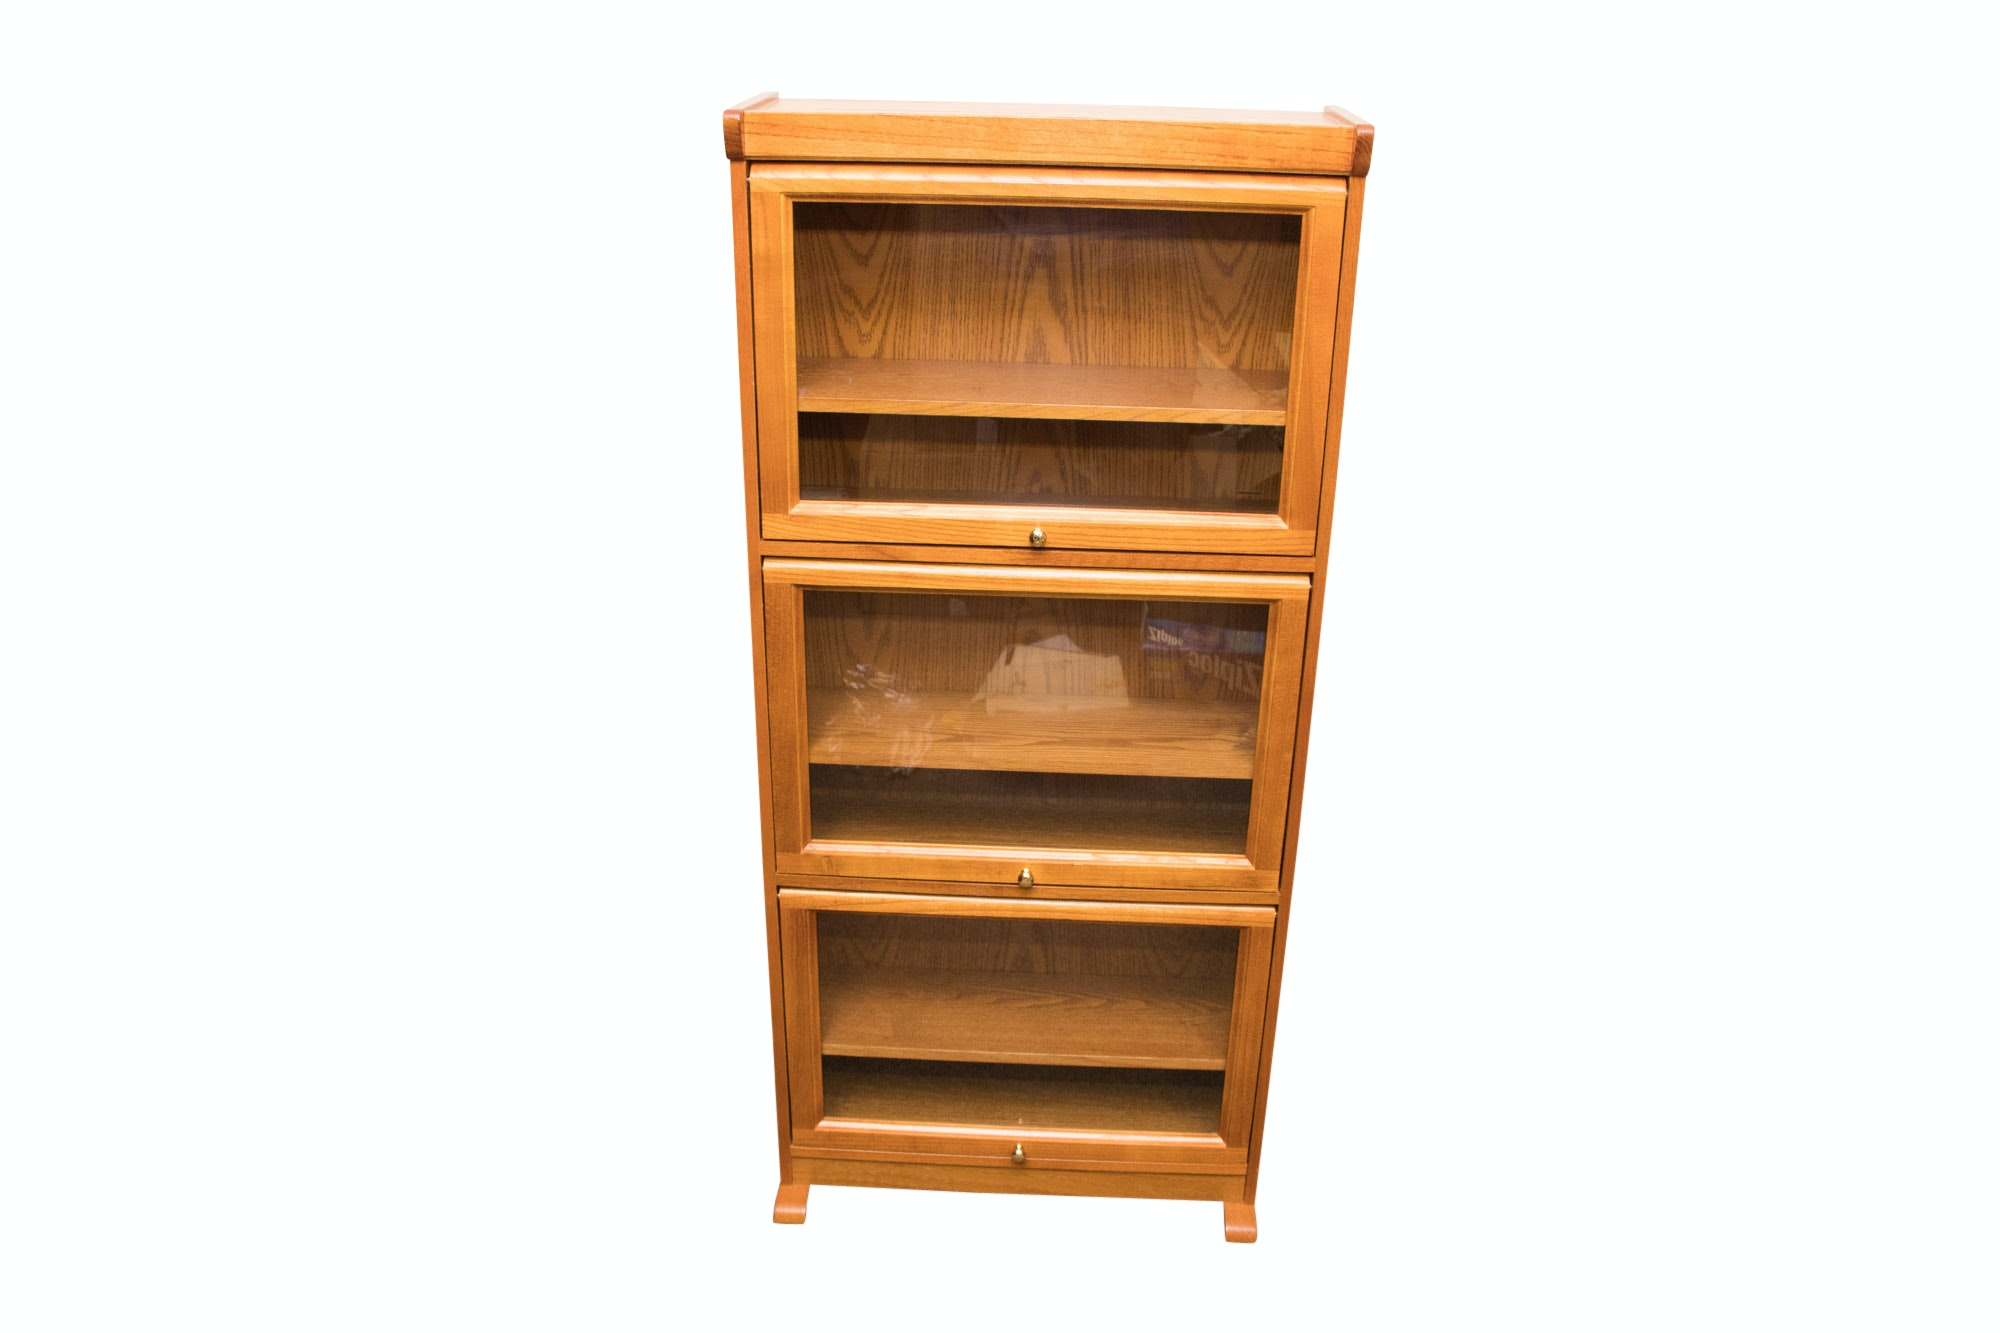 Barrister's Style Bookcase